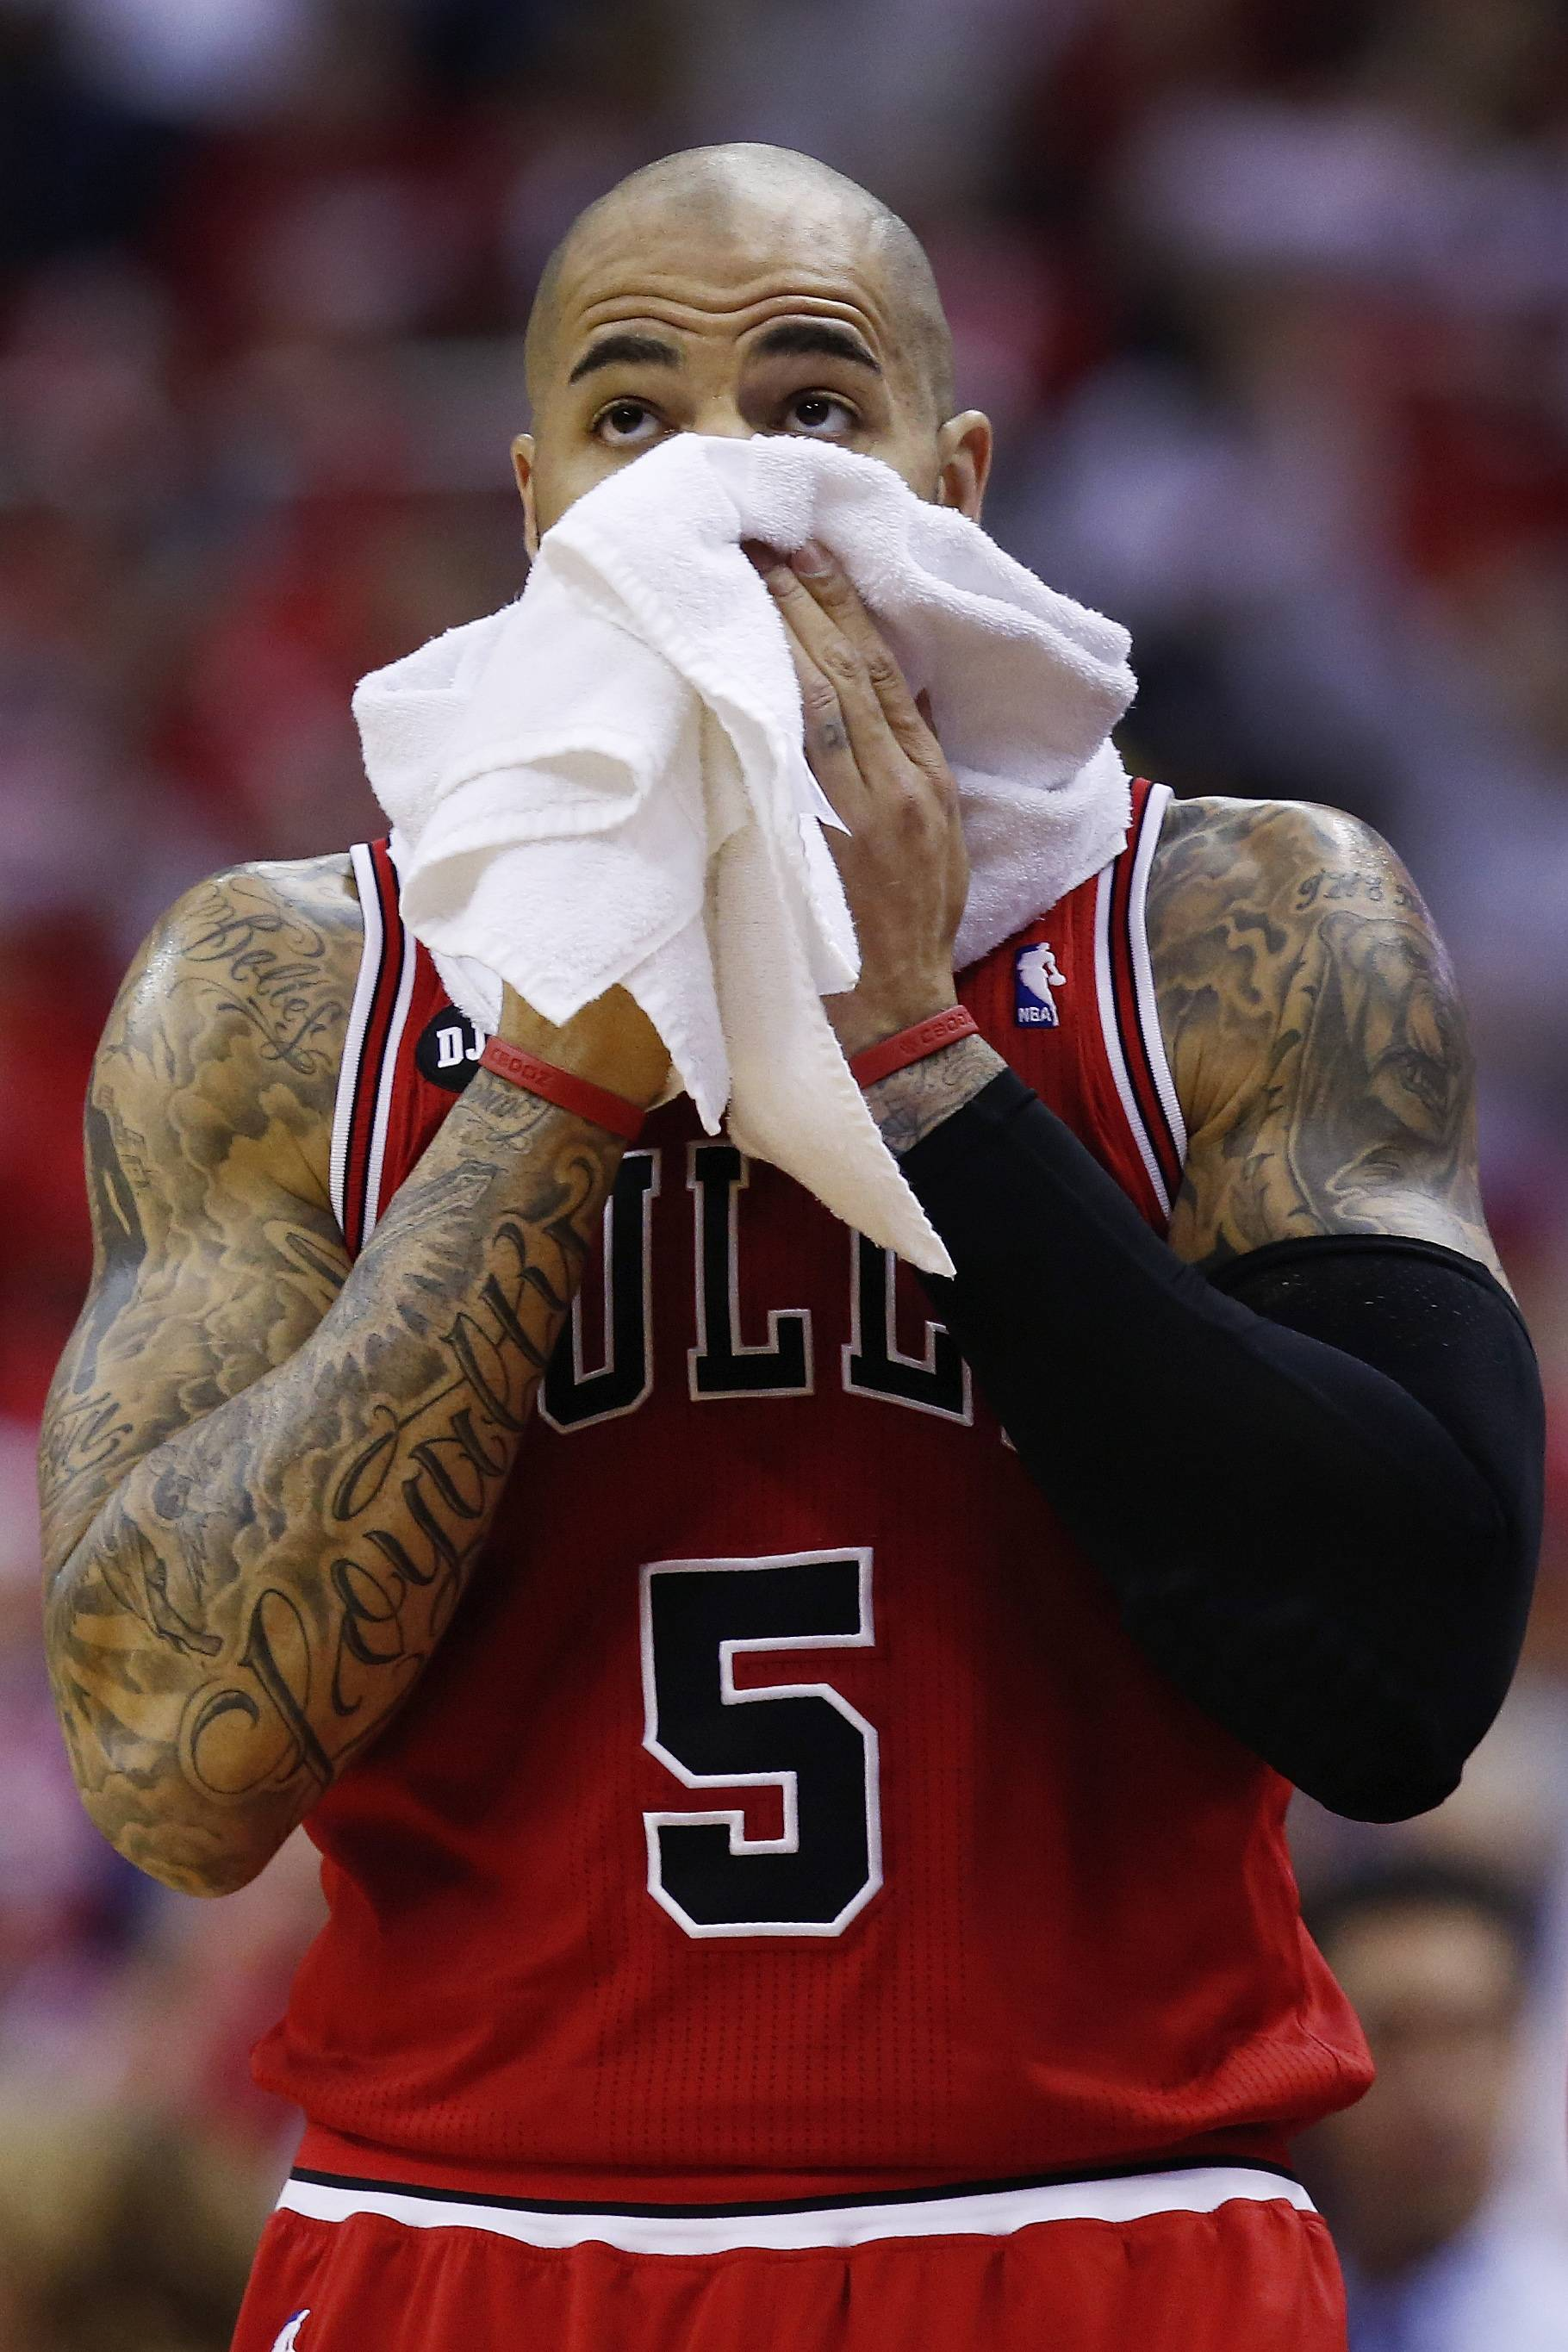 Tonight's game could be Carlos Boozer's last in a Bulls uniform.